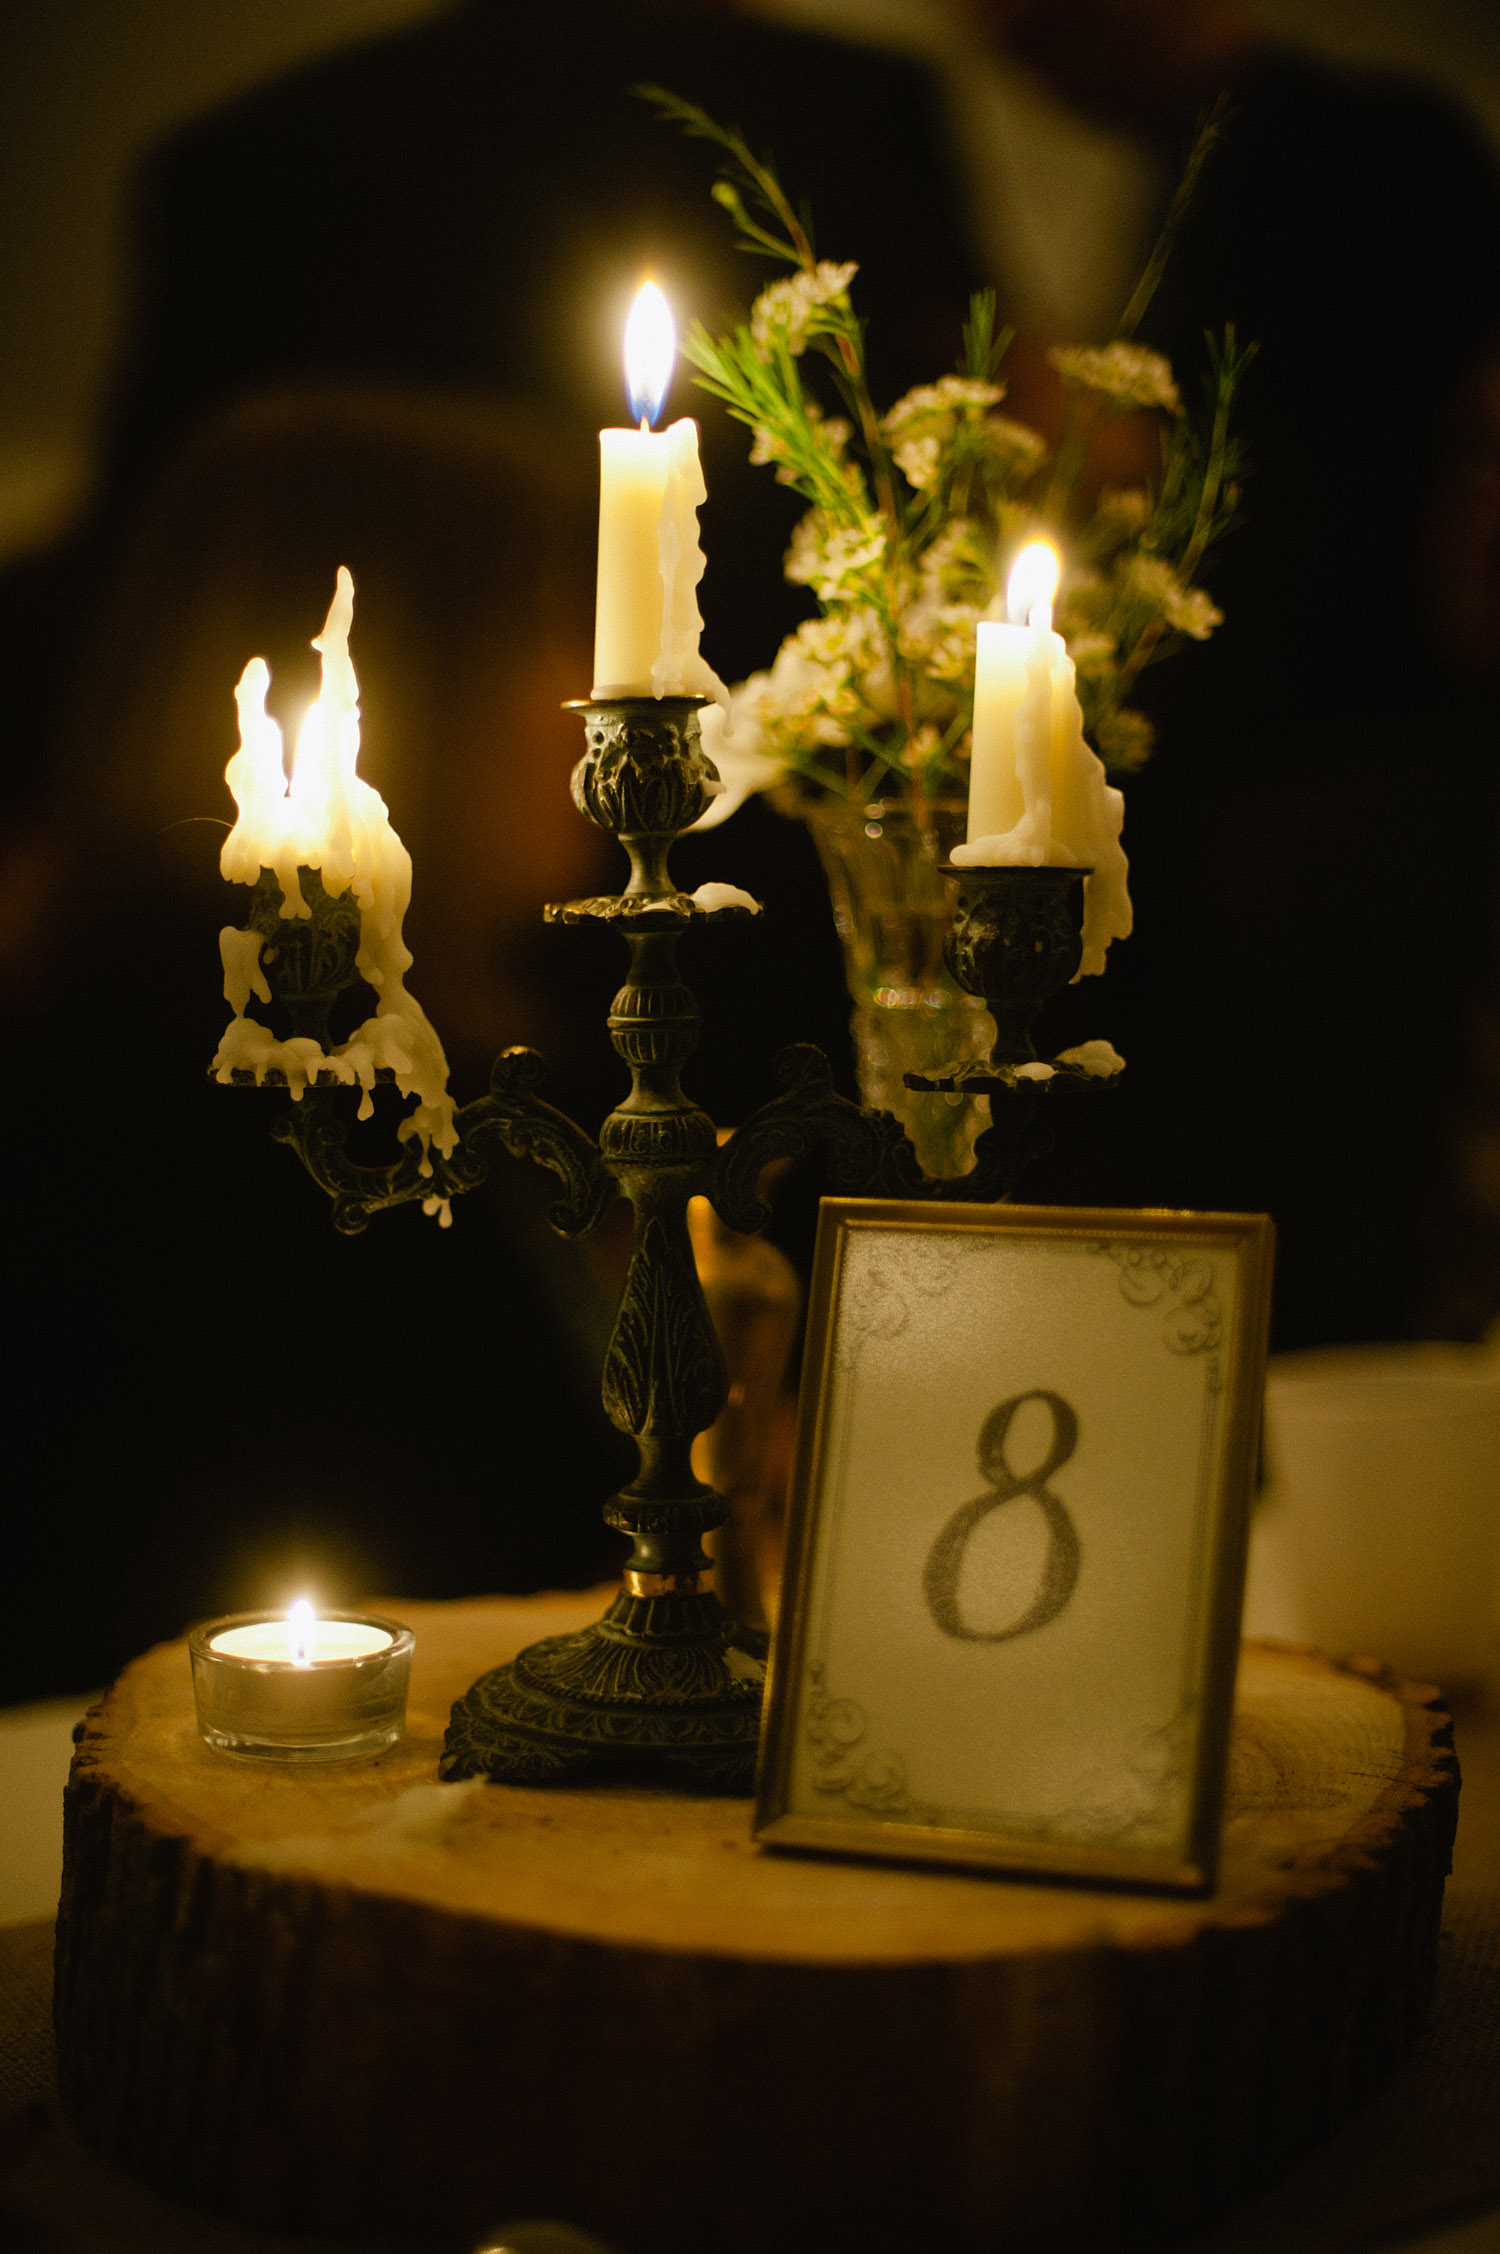 romantic candles light this reception table at this springtime wedding at Northwind Perennial gardens - a wisconsin wedding venue - as a film wedding photographer Lexia Frank photographs this destination wedding on film